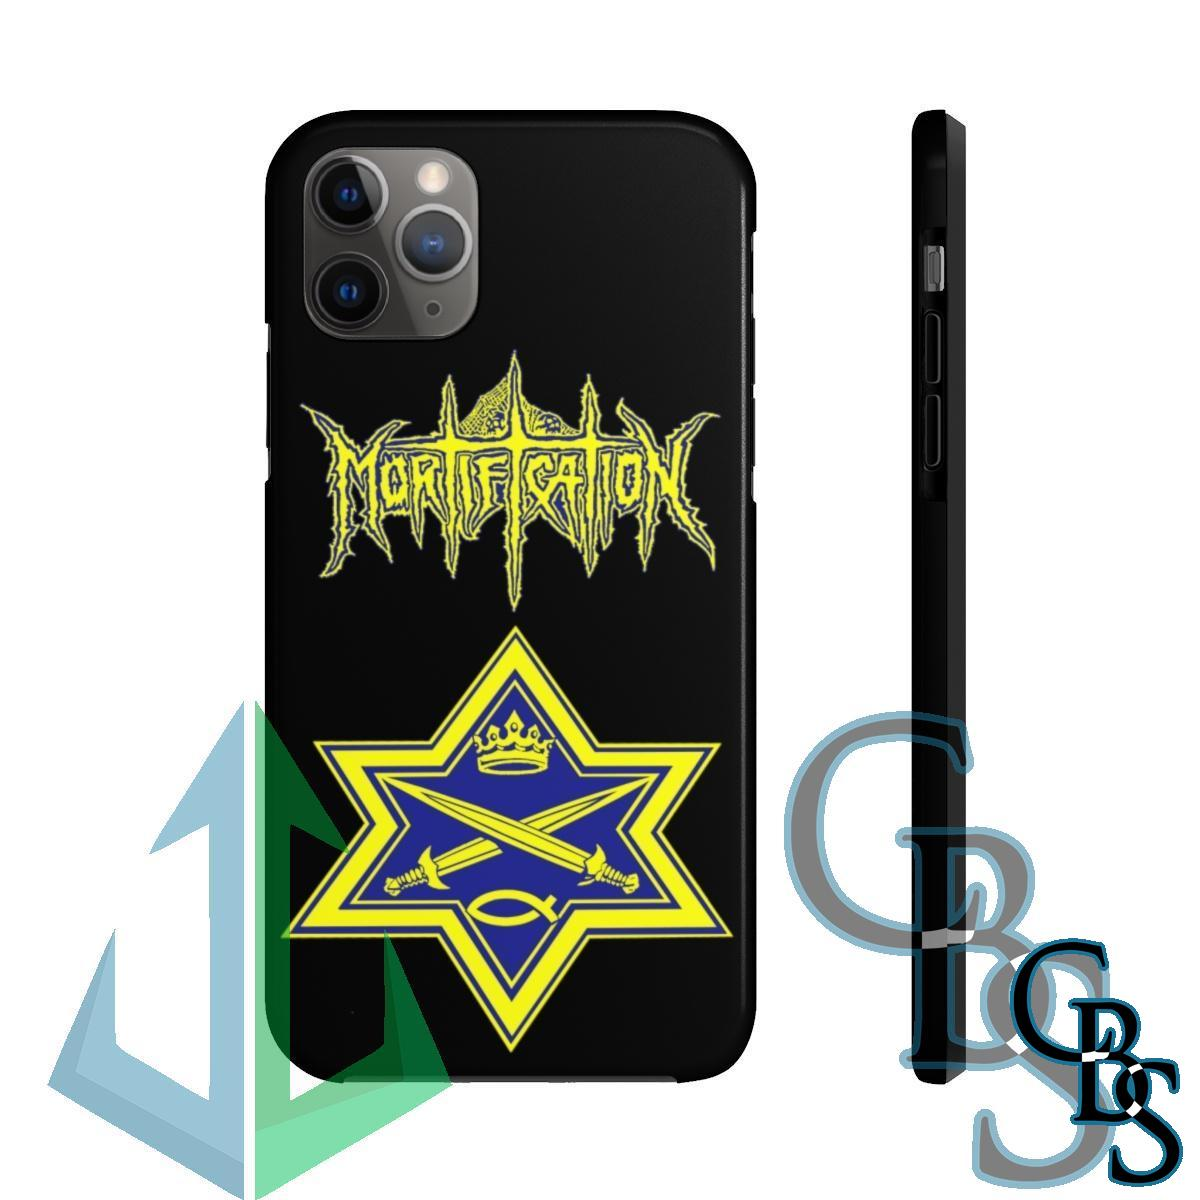 Mortification Logo and Star iPhone Cases (iPhone 7/7 Plus, iPhone 8/8 Plus, iPhone X, XS, XR, iPhone 11, 11 Pro, 11 Pro Max)